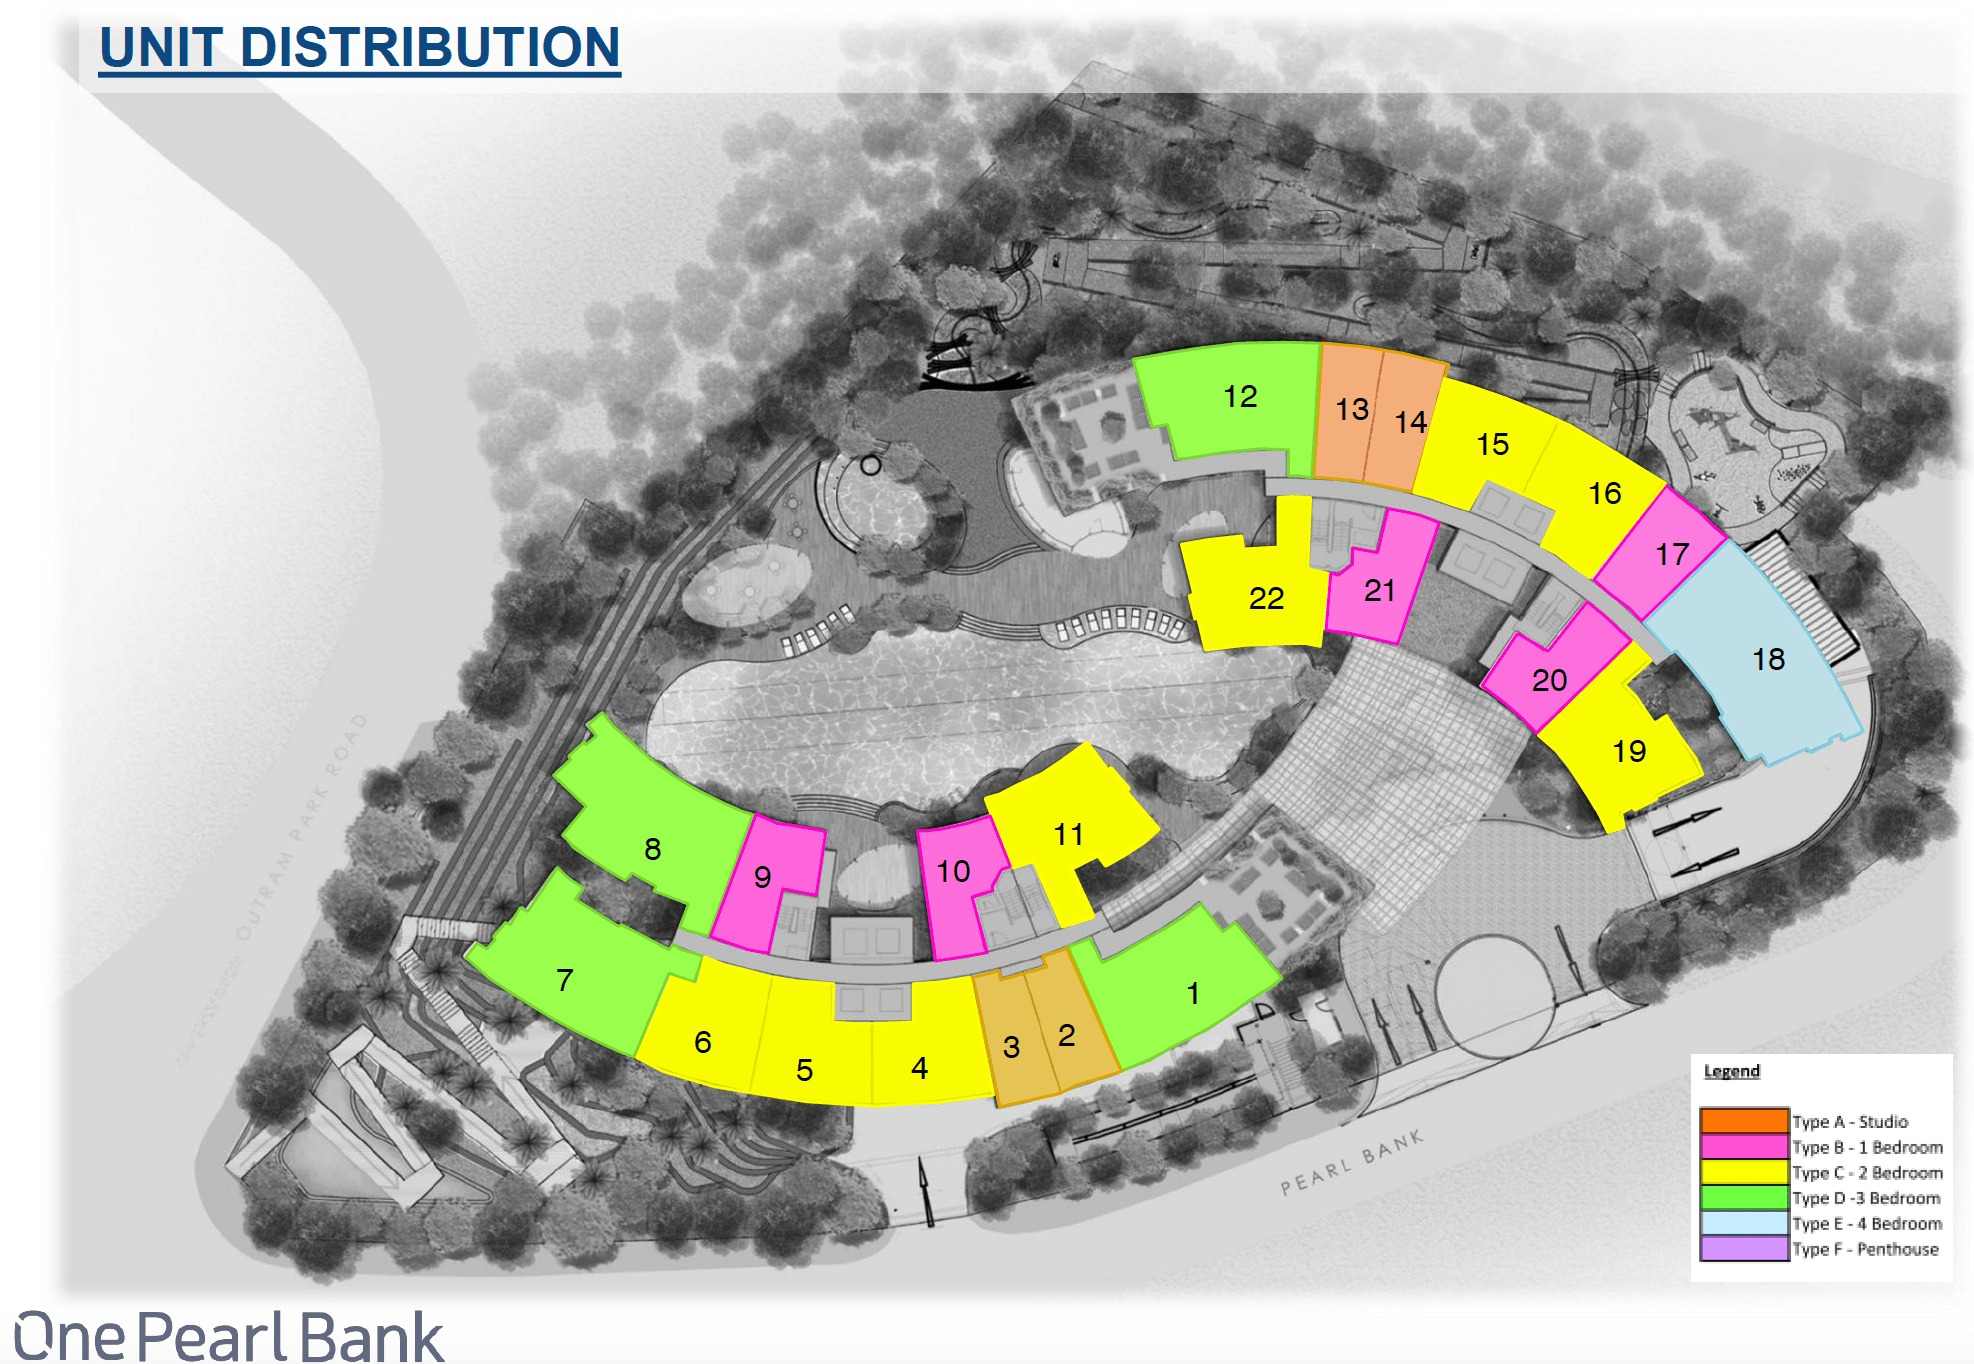 One Pearl Bank Unit Distribution site plan